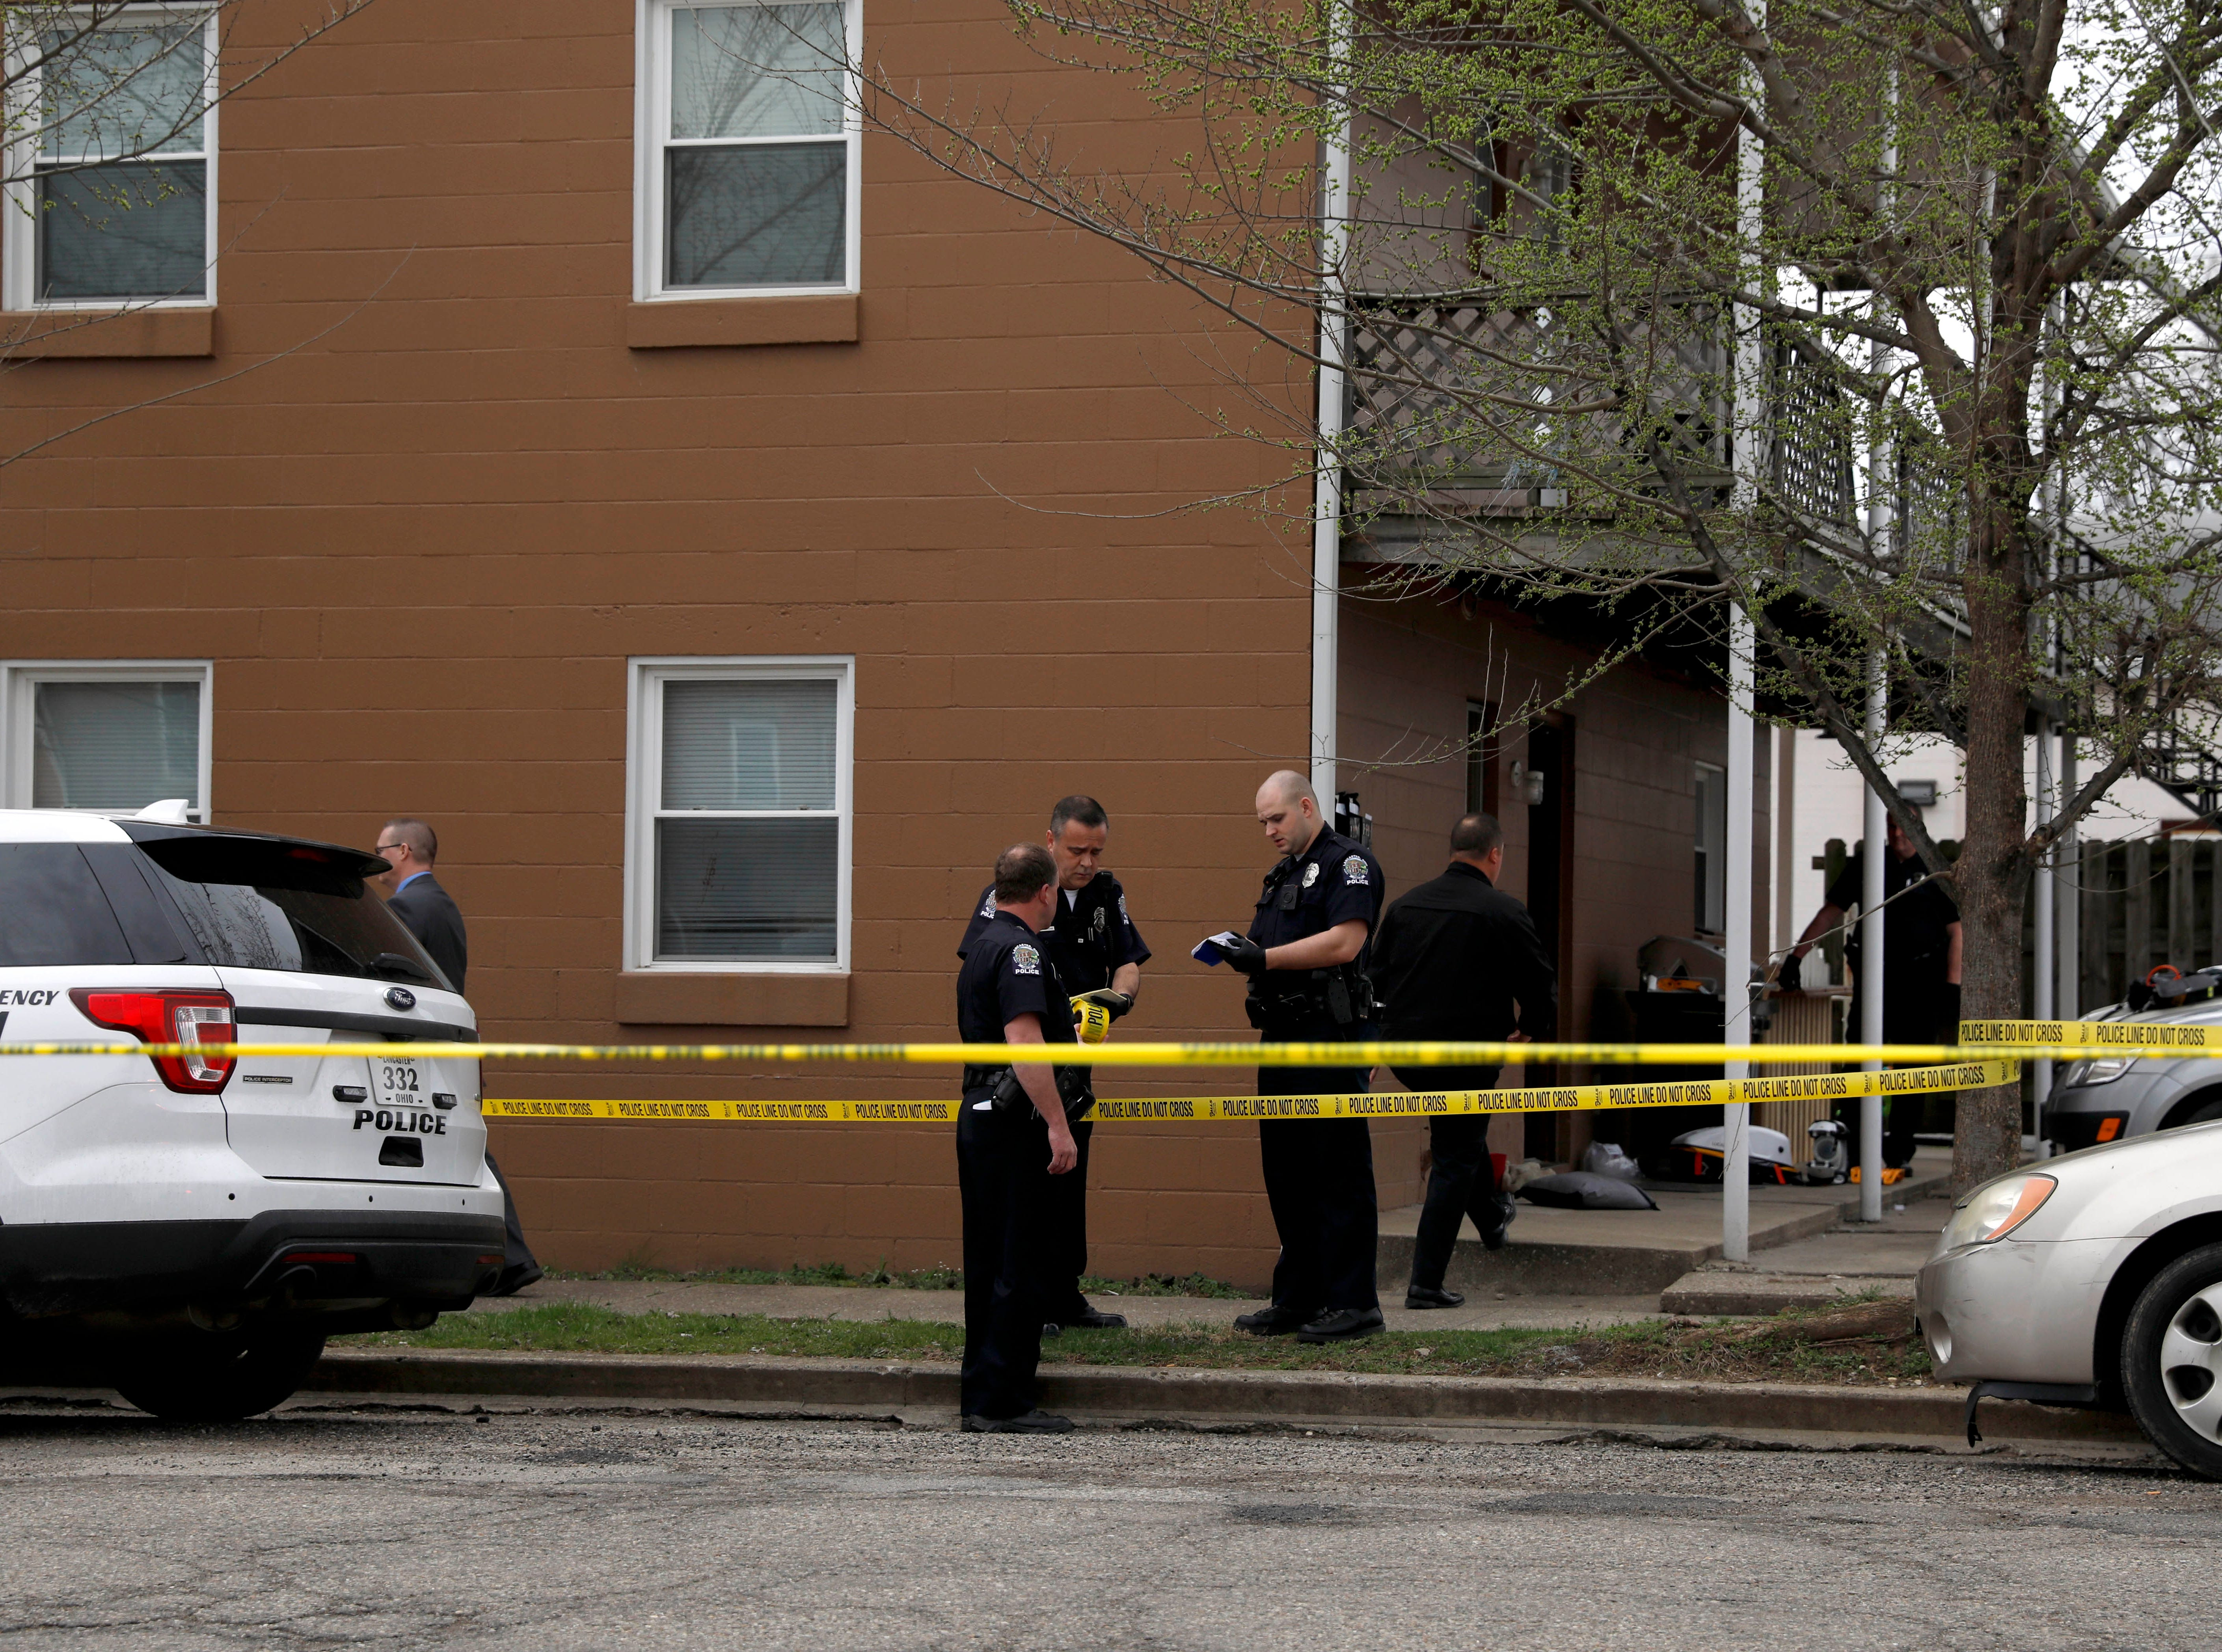 Lancaster police officers investigate a stabbing at an apartment building Monday morning, April 8, 2019, in downtown Lancaster. One man died in the stabbing.